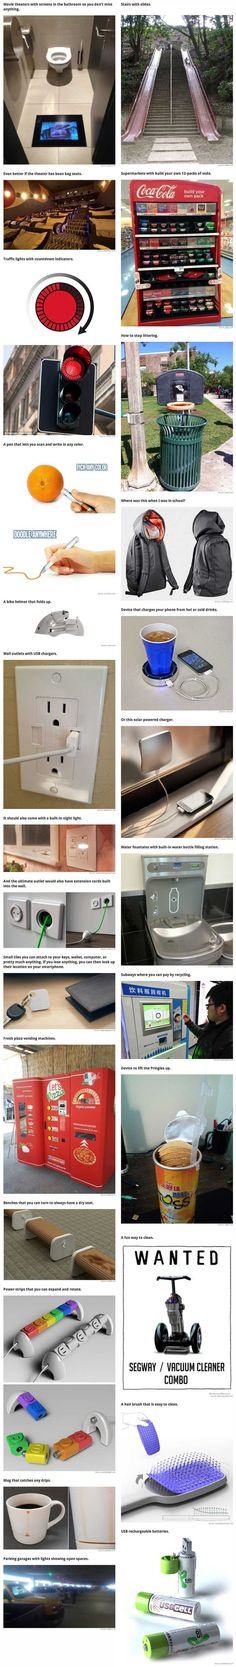 26 clever innovations that totally need to be everywhere already